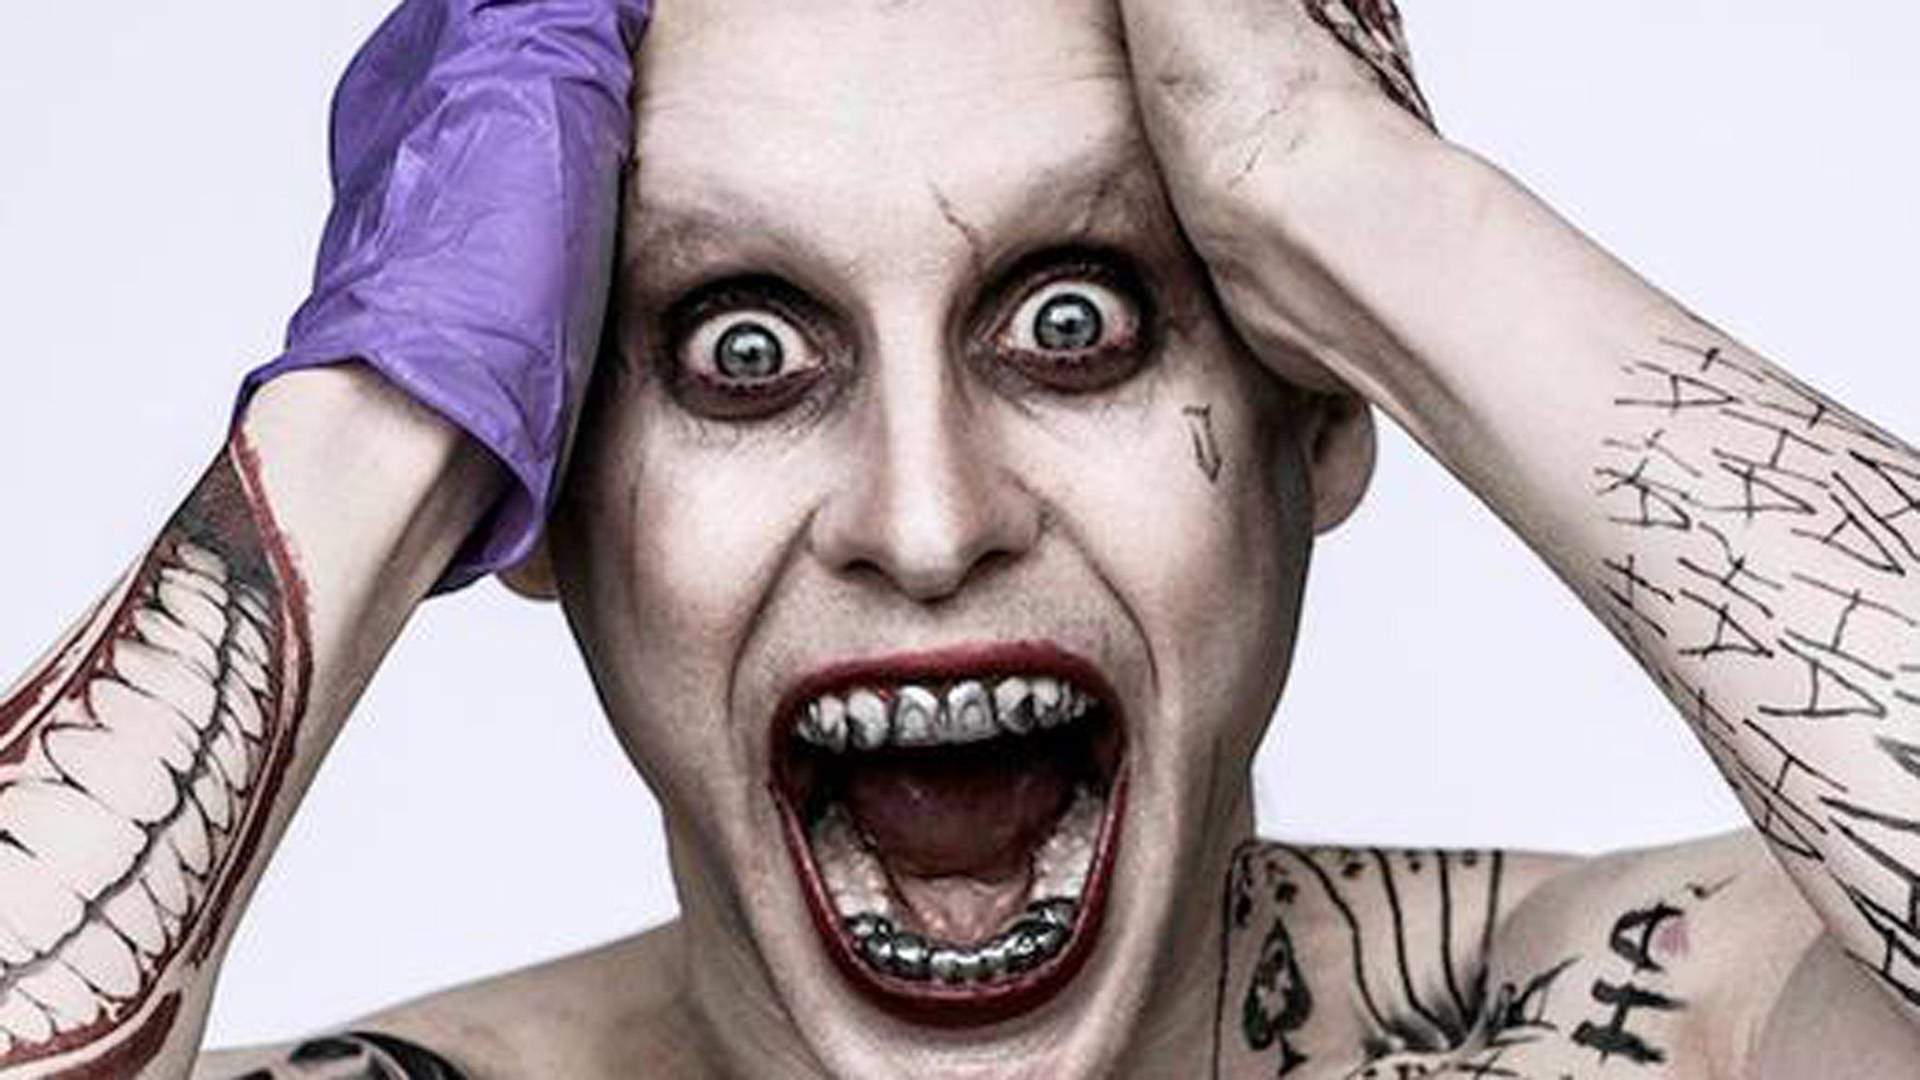 jaredletojoker photo